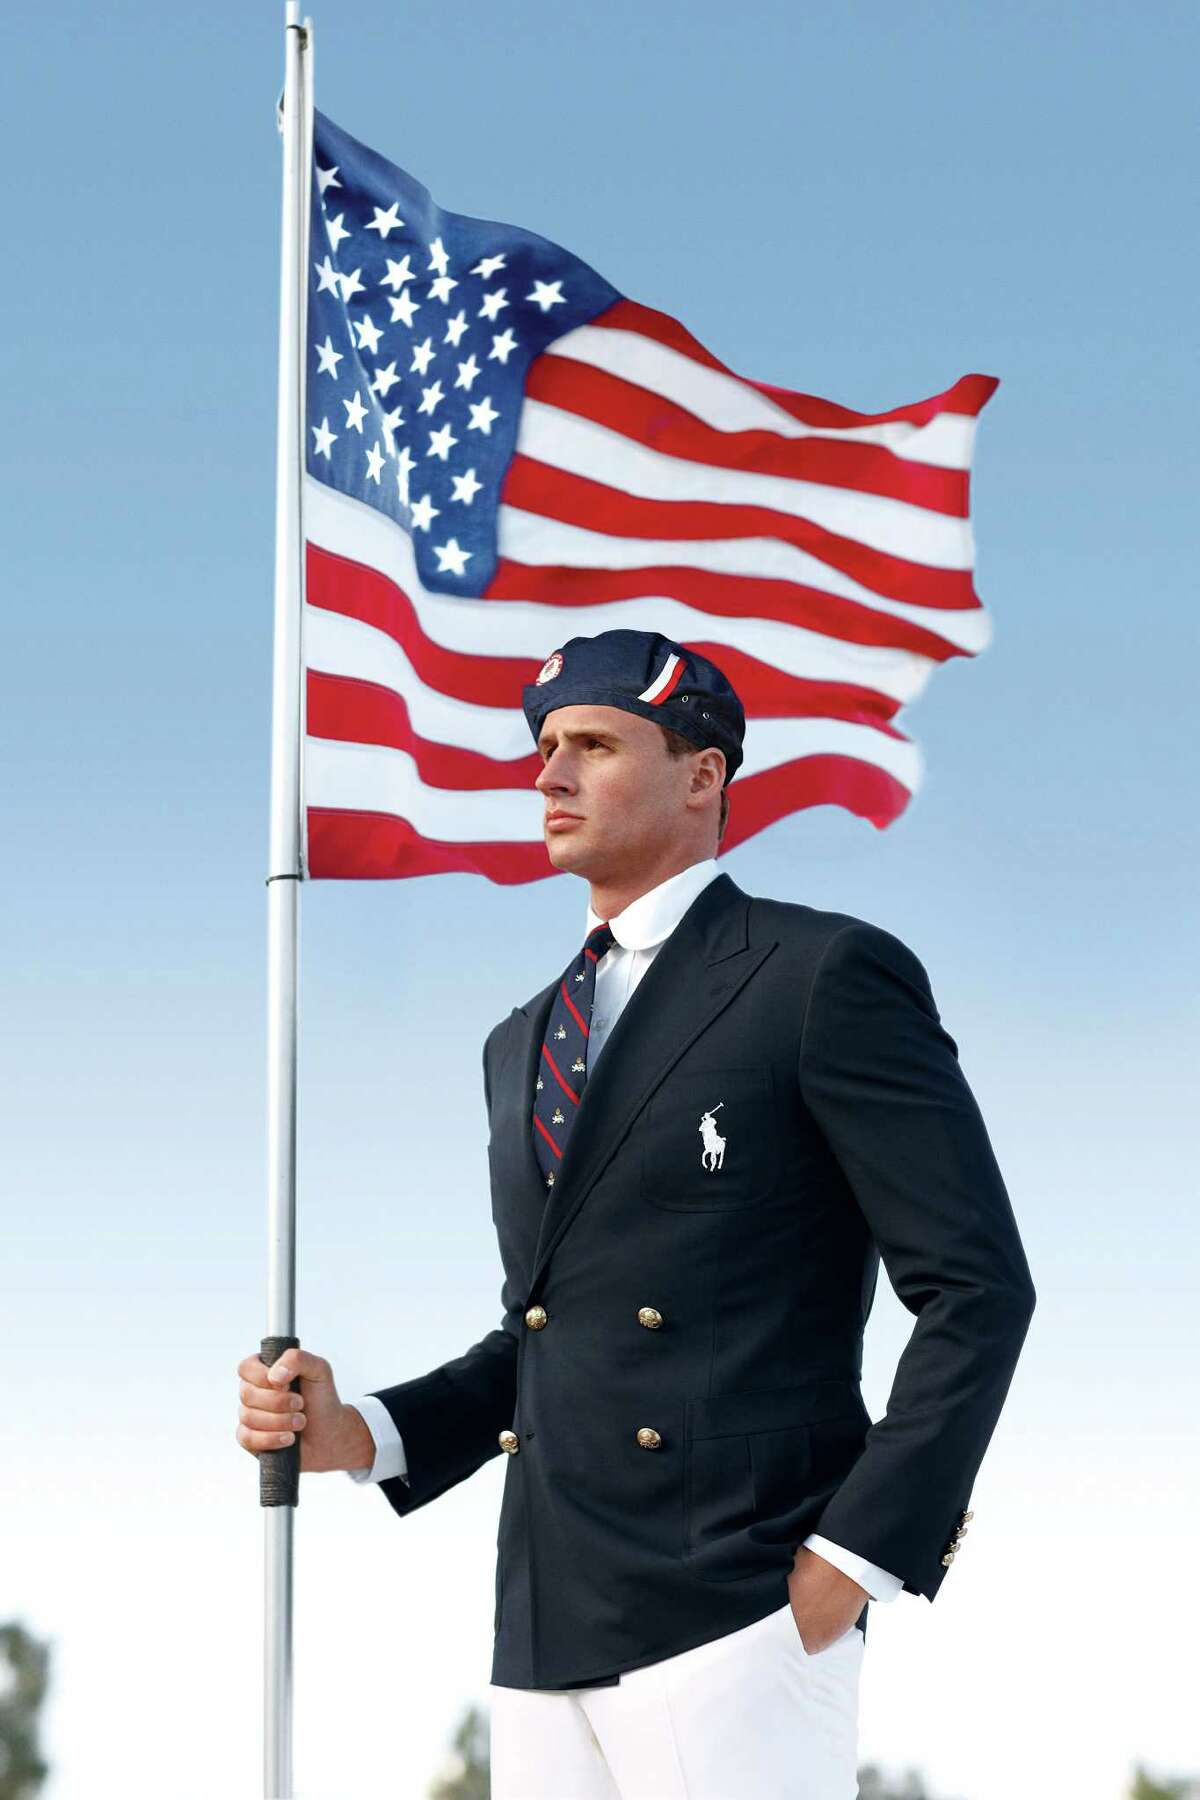 This product image released by Ralph Lauren shows U.S. Olympic swimmer Ryan Lochte modeling the the official Team USA opening ceremony parade uniform. (AP Photo/Ralph Lauren)